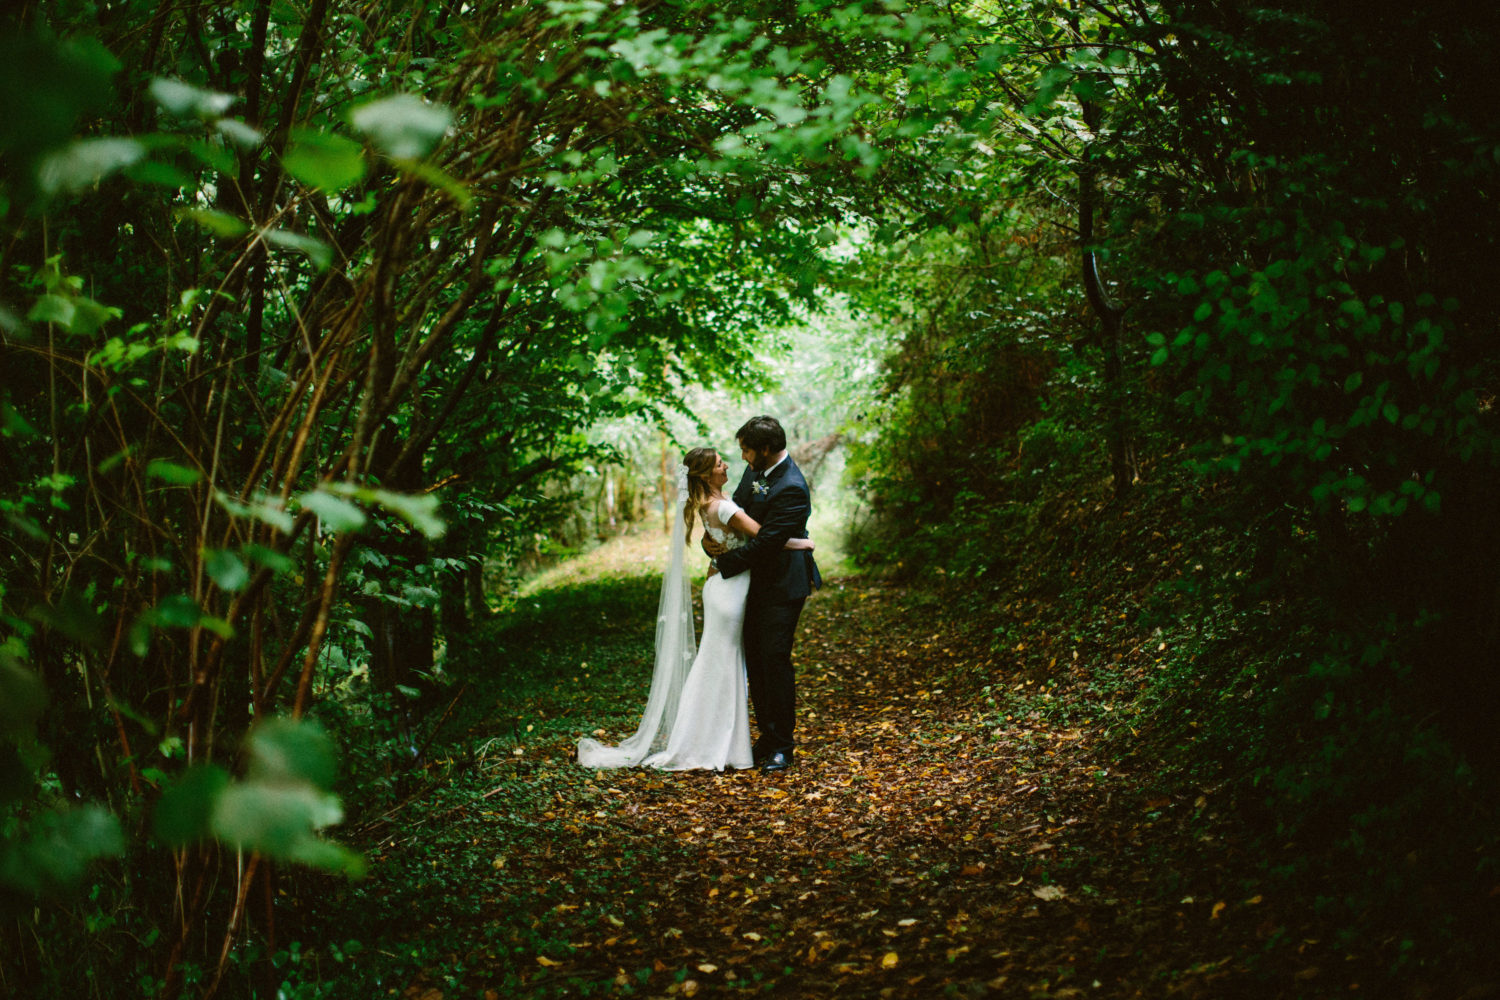 les amoureux au pays basque mariage countryside wedding in france